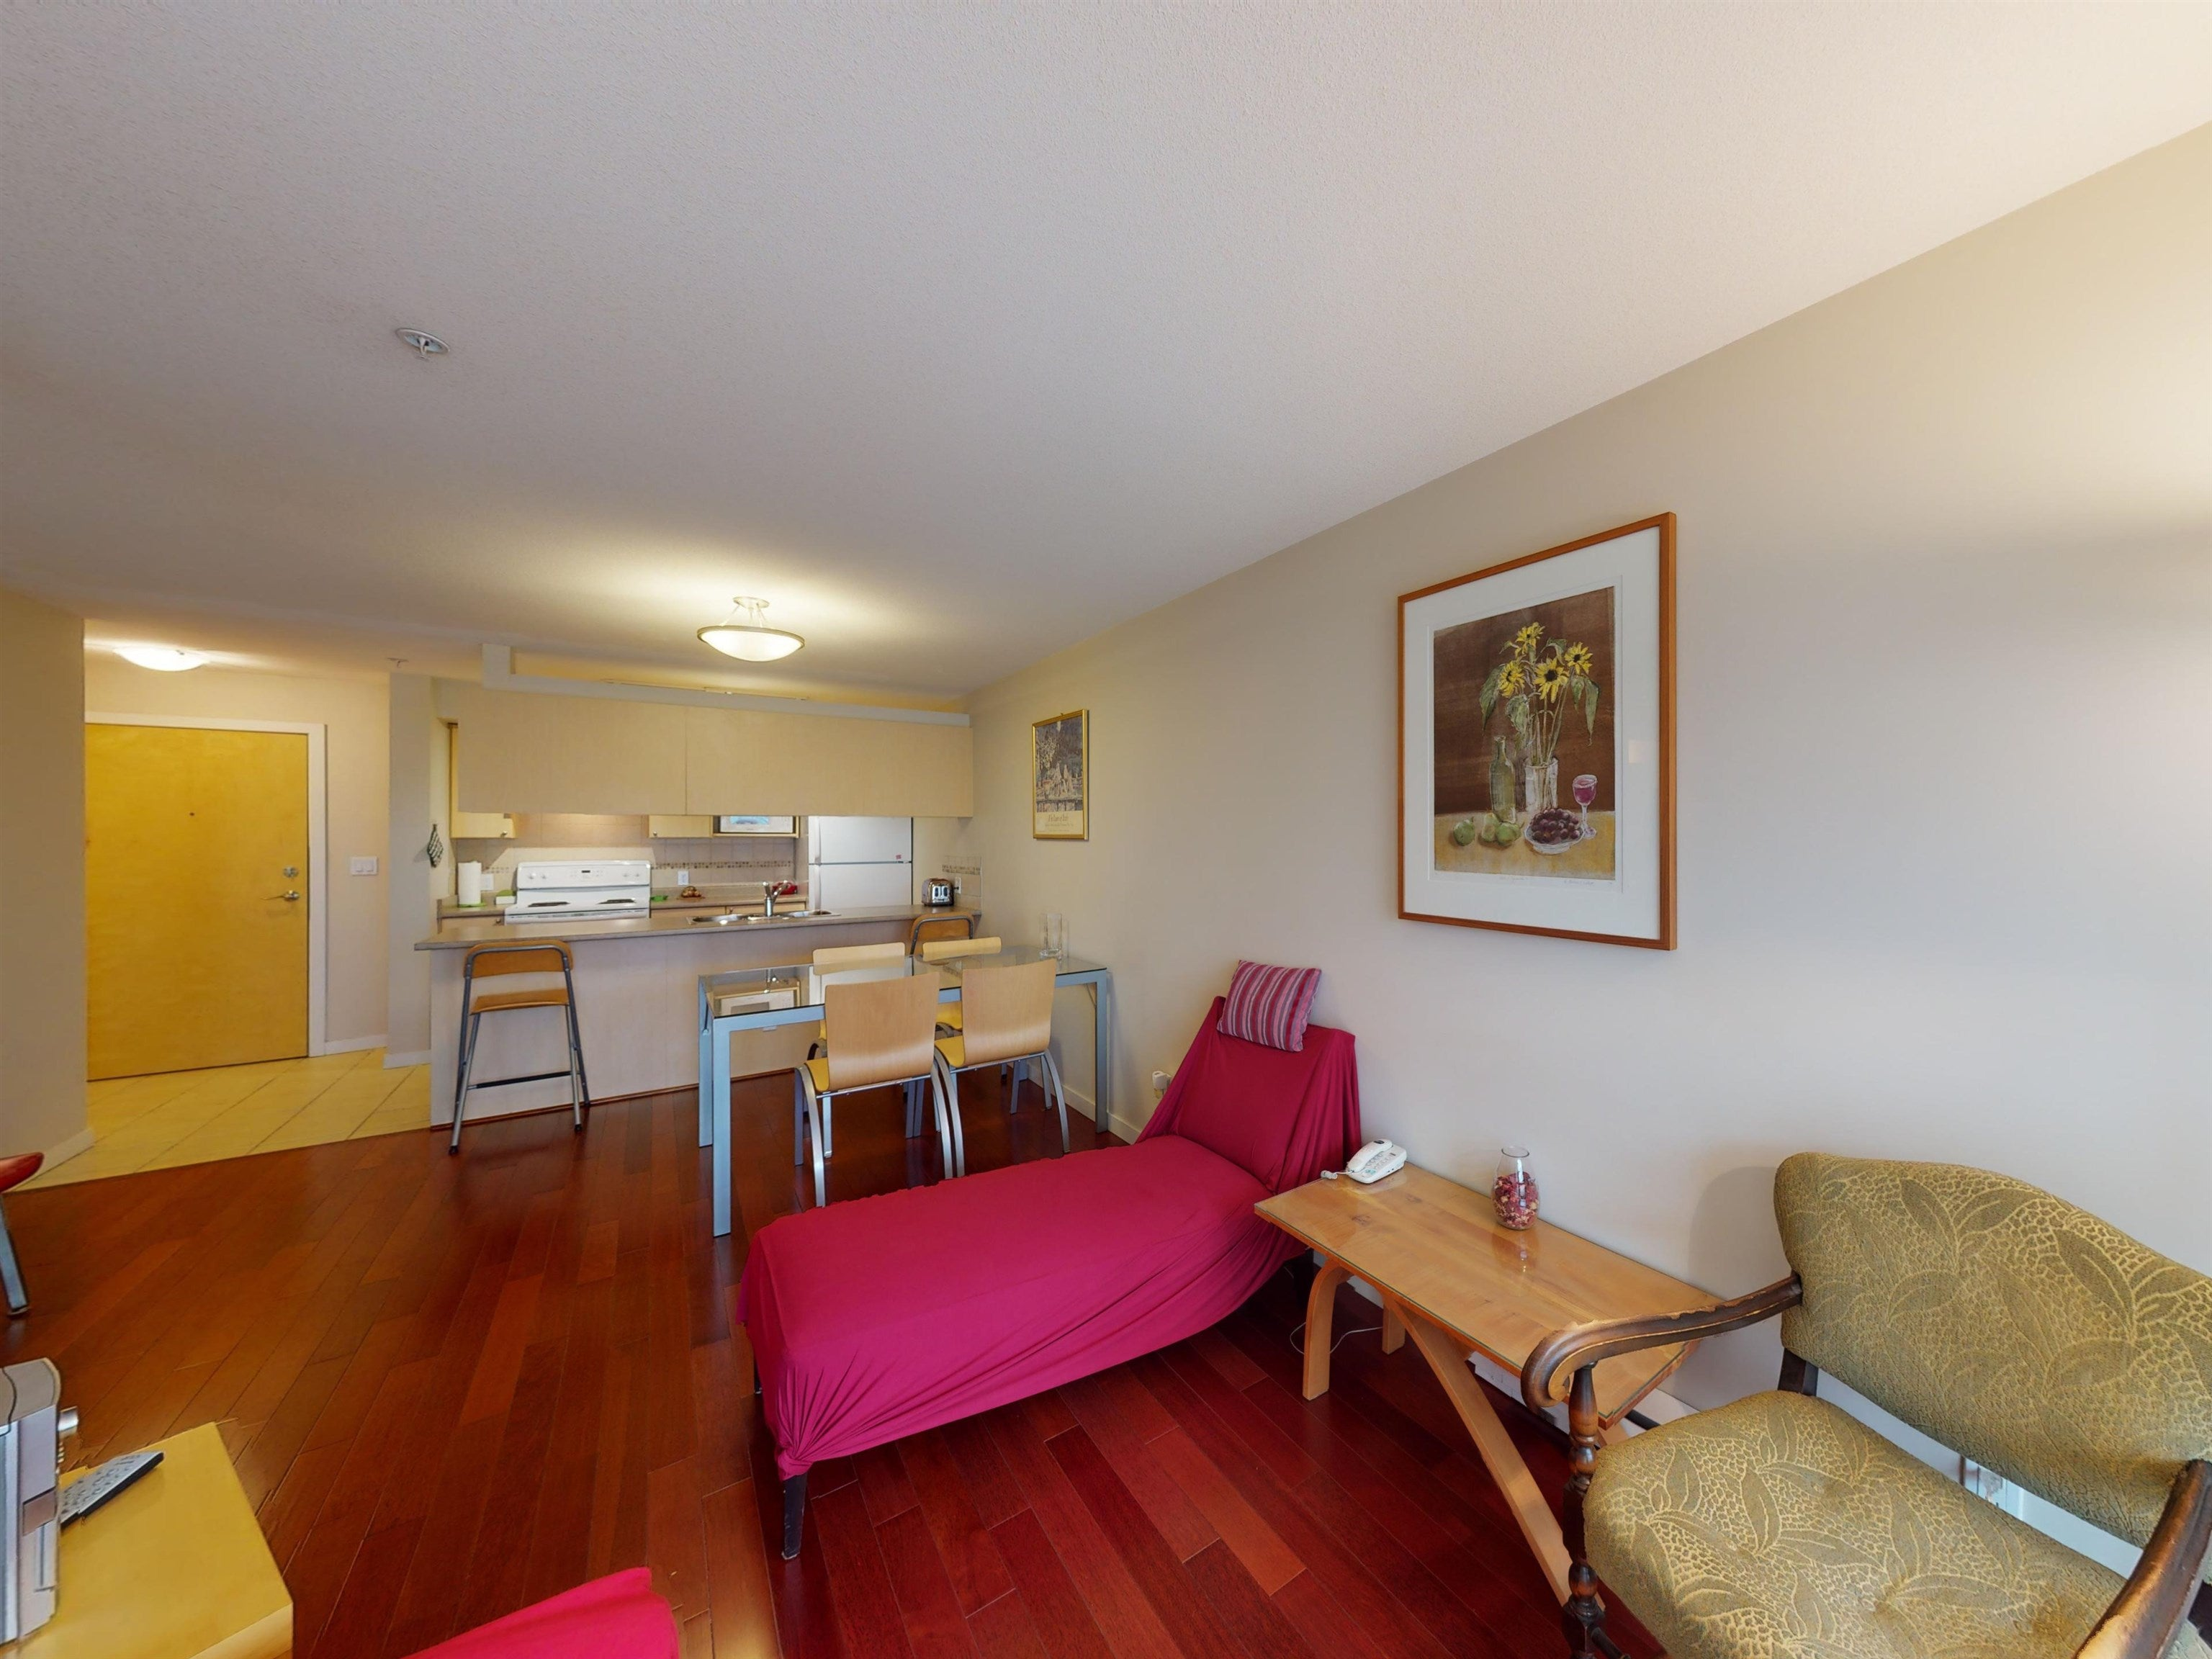 317 2891 E HASTINGS STREET - Hastings Apartment/Condo for sale, 1 Bedroom (R2615463) - #8